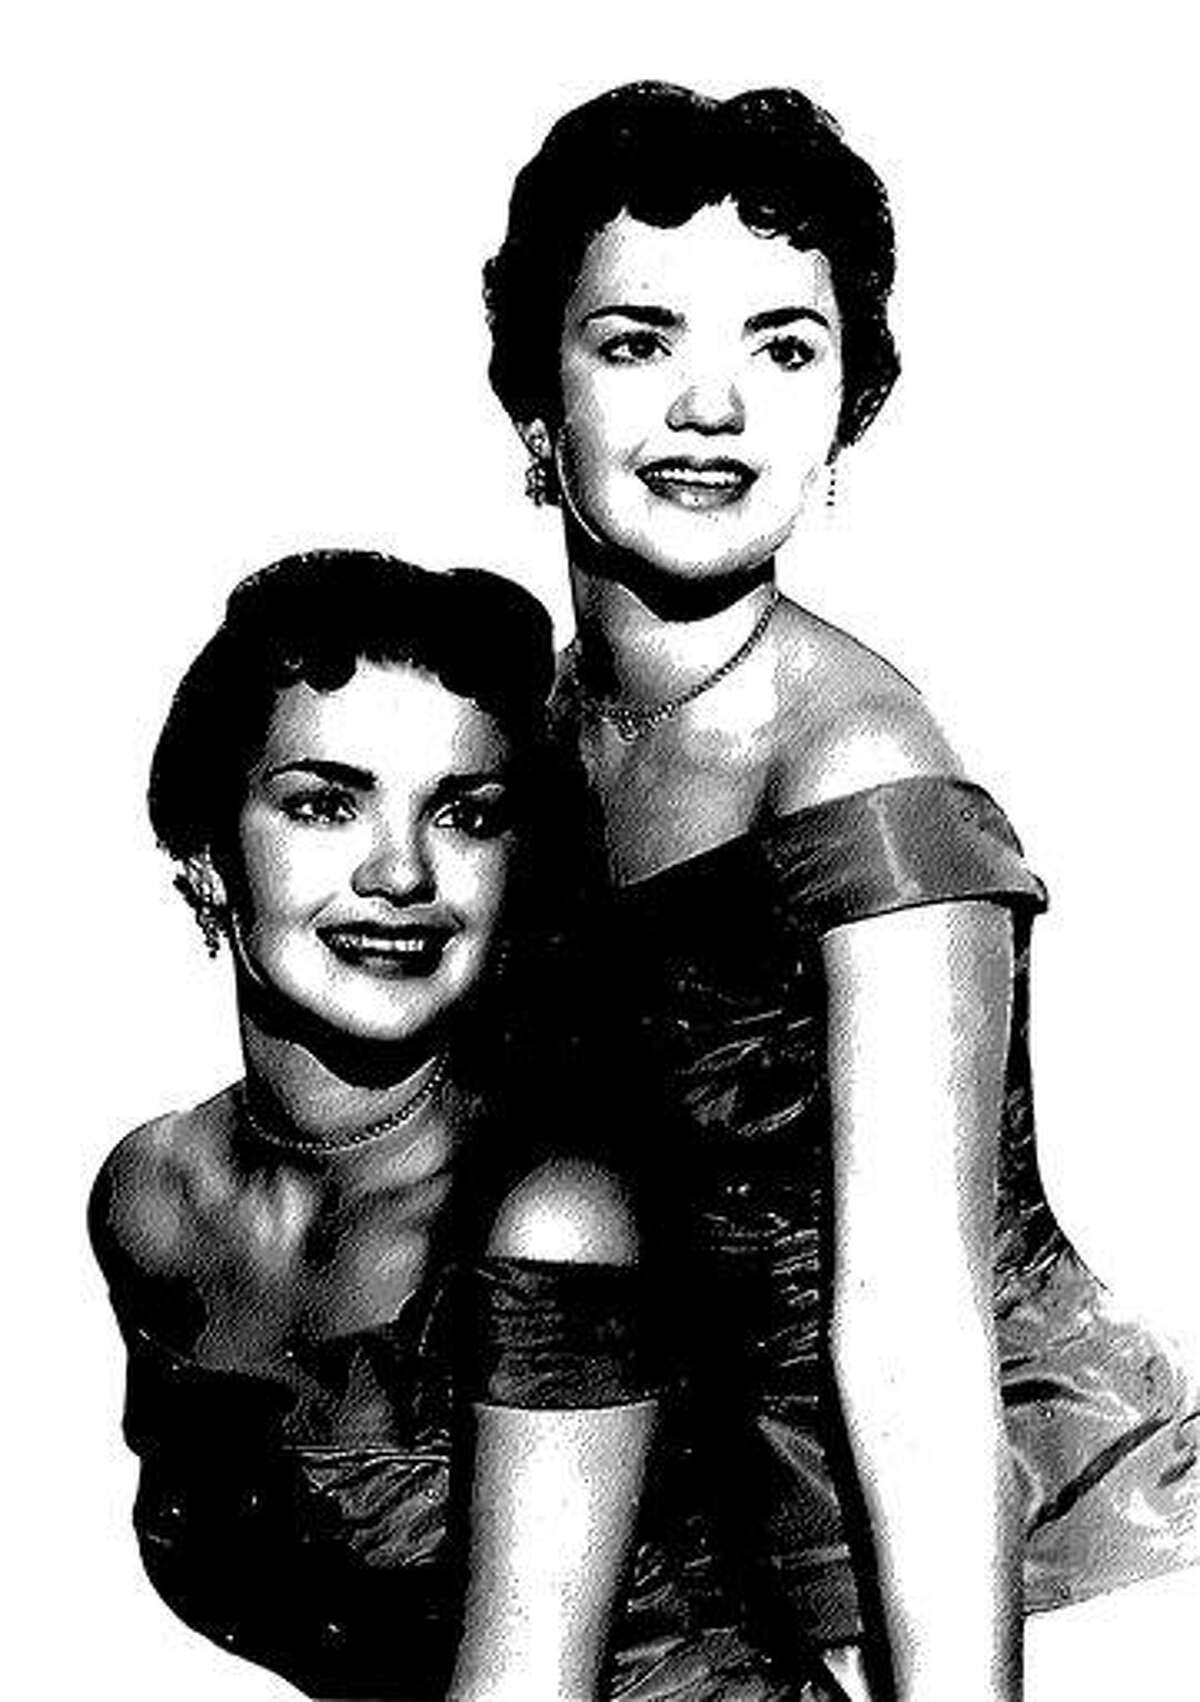 This undated copy of a photo provided by the El Dorado County Sheriff's Office shows twin sisters Patricia and Joan Miller. It is unknown which sister is which. Associated Press